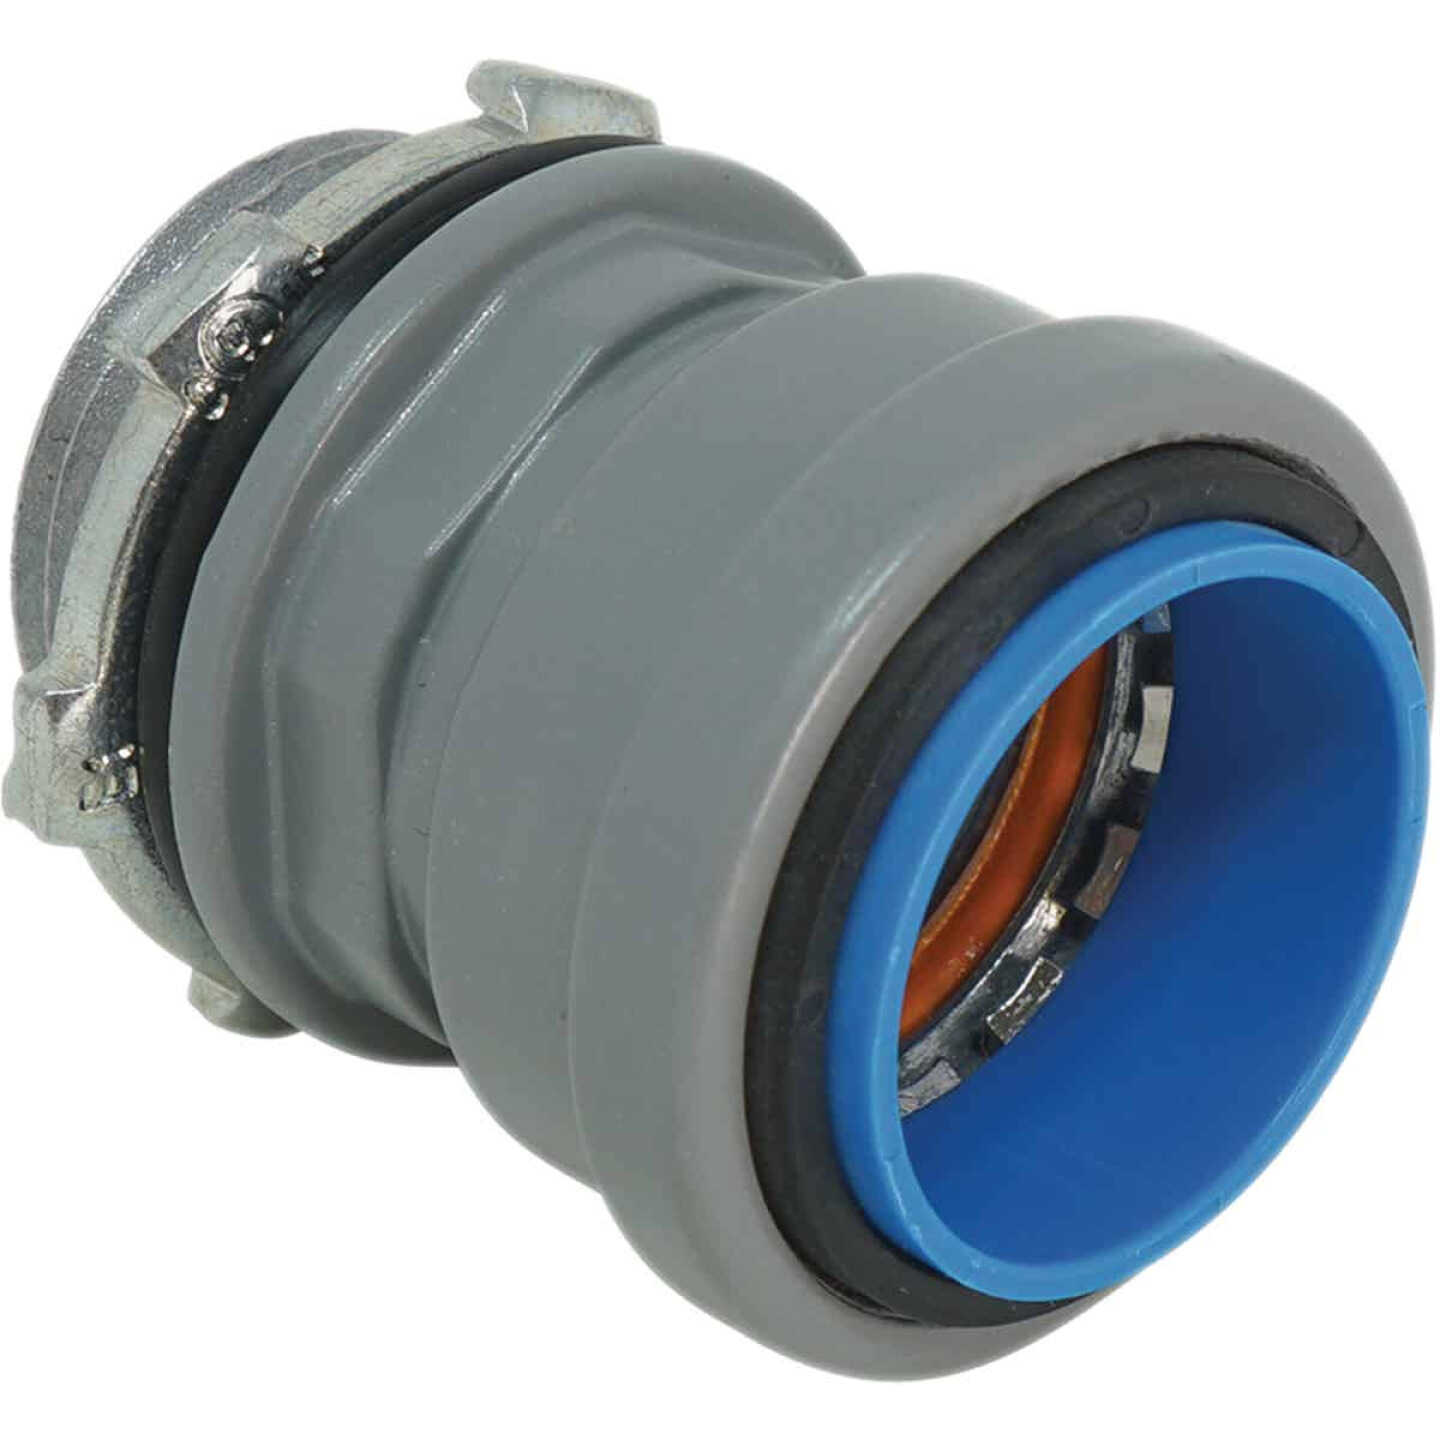 Southwire SimPush 1/2 In. EMT Push-To-Install Watertight Box Connector Image 1